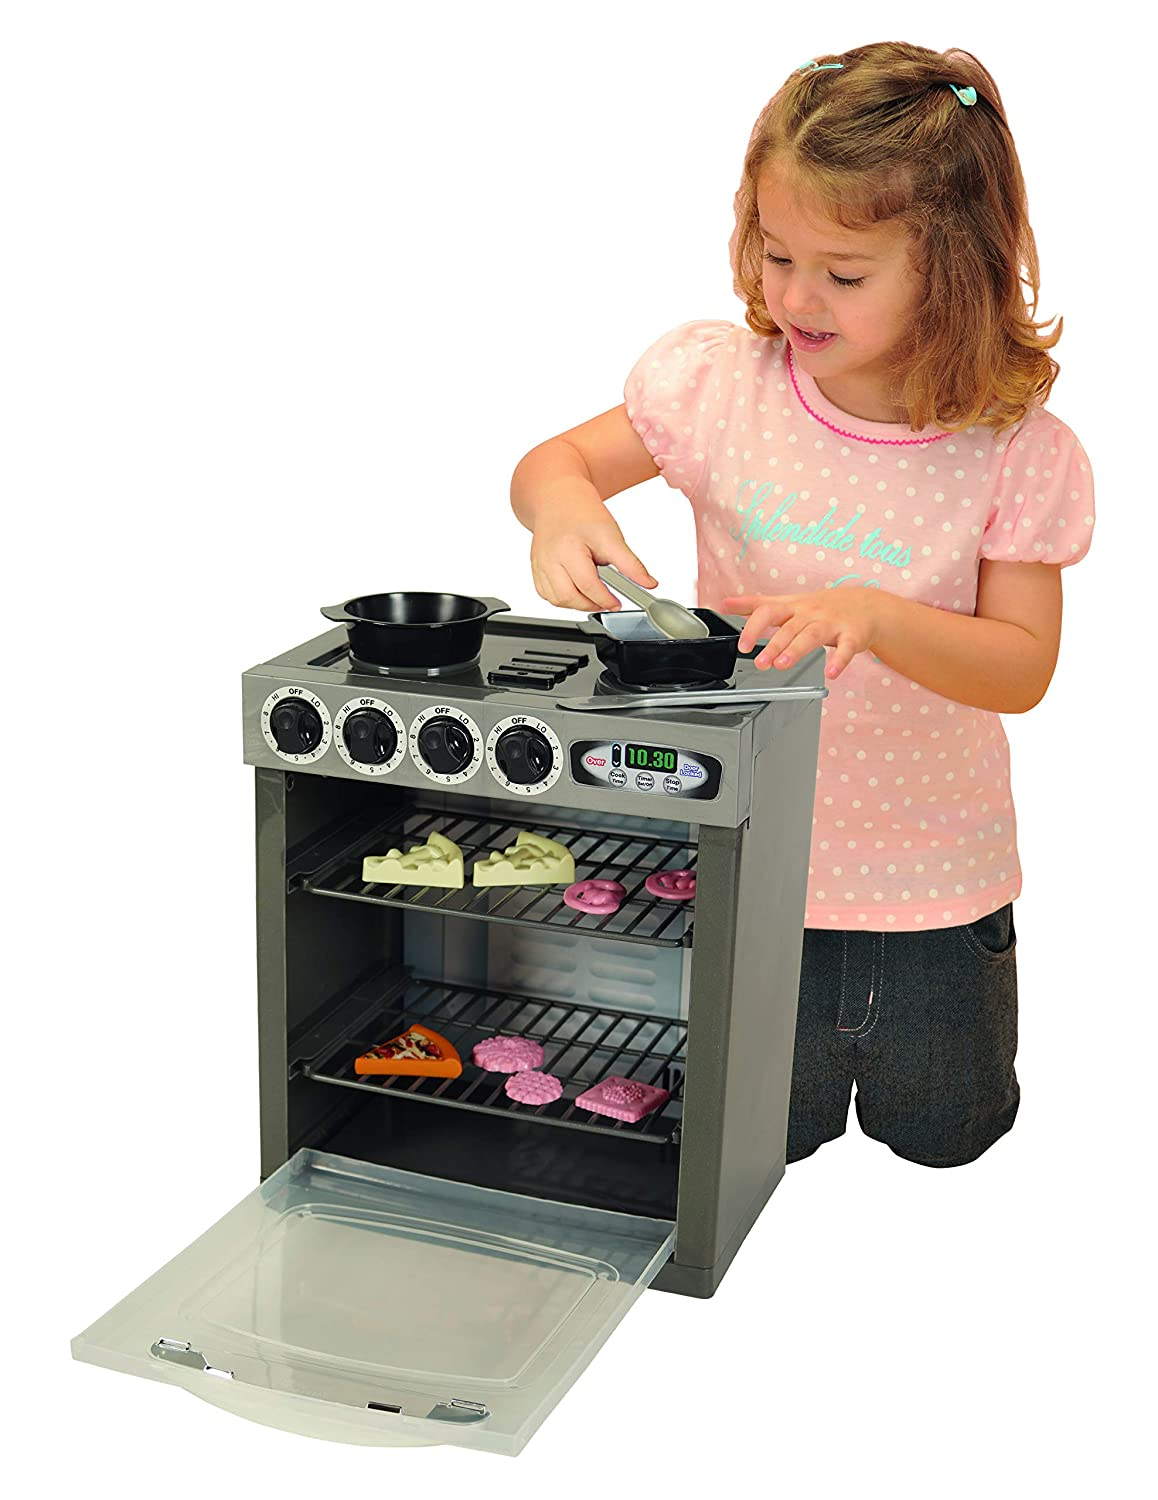 Pavlov'z Toyz Ultra-Cheap Special sale item Deals Electronic Playset Stove 16 Count